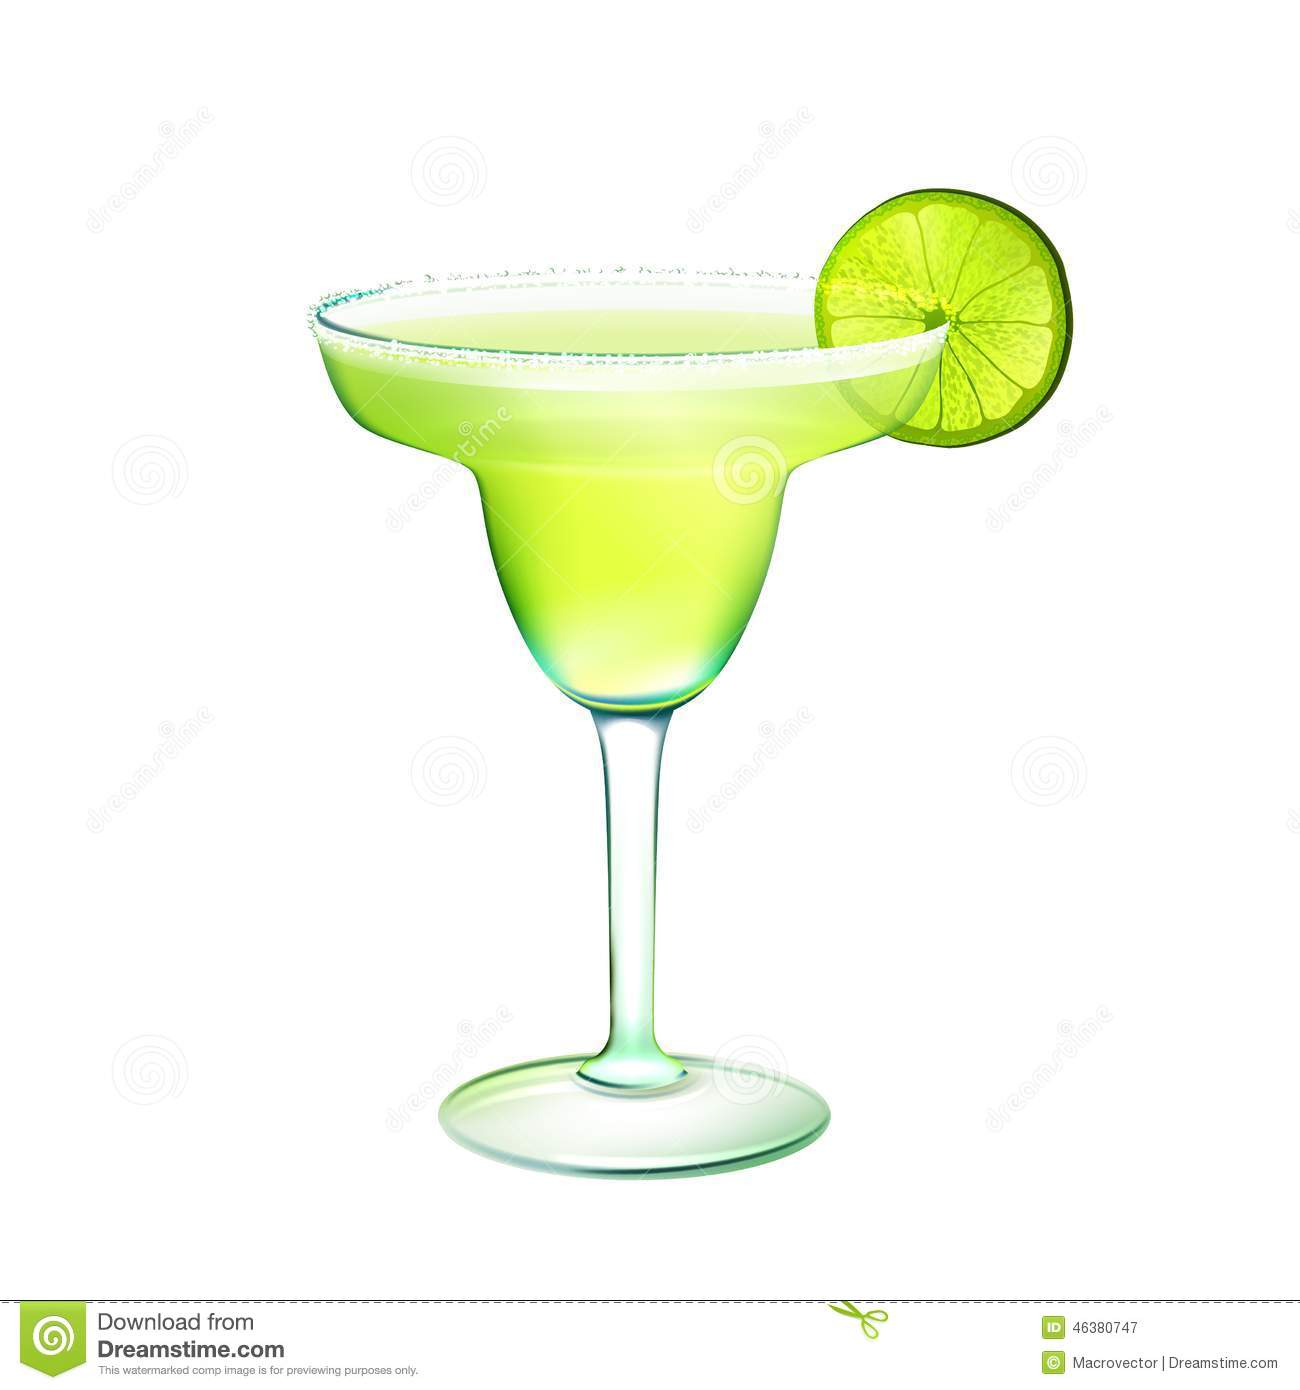 Margarita cocktail realistic stock vector illustration for Cocktail margarita